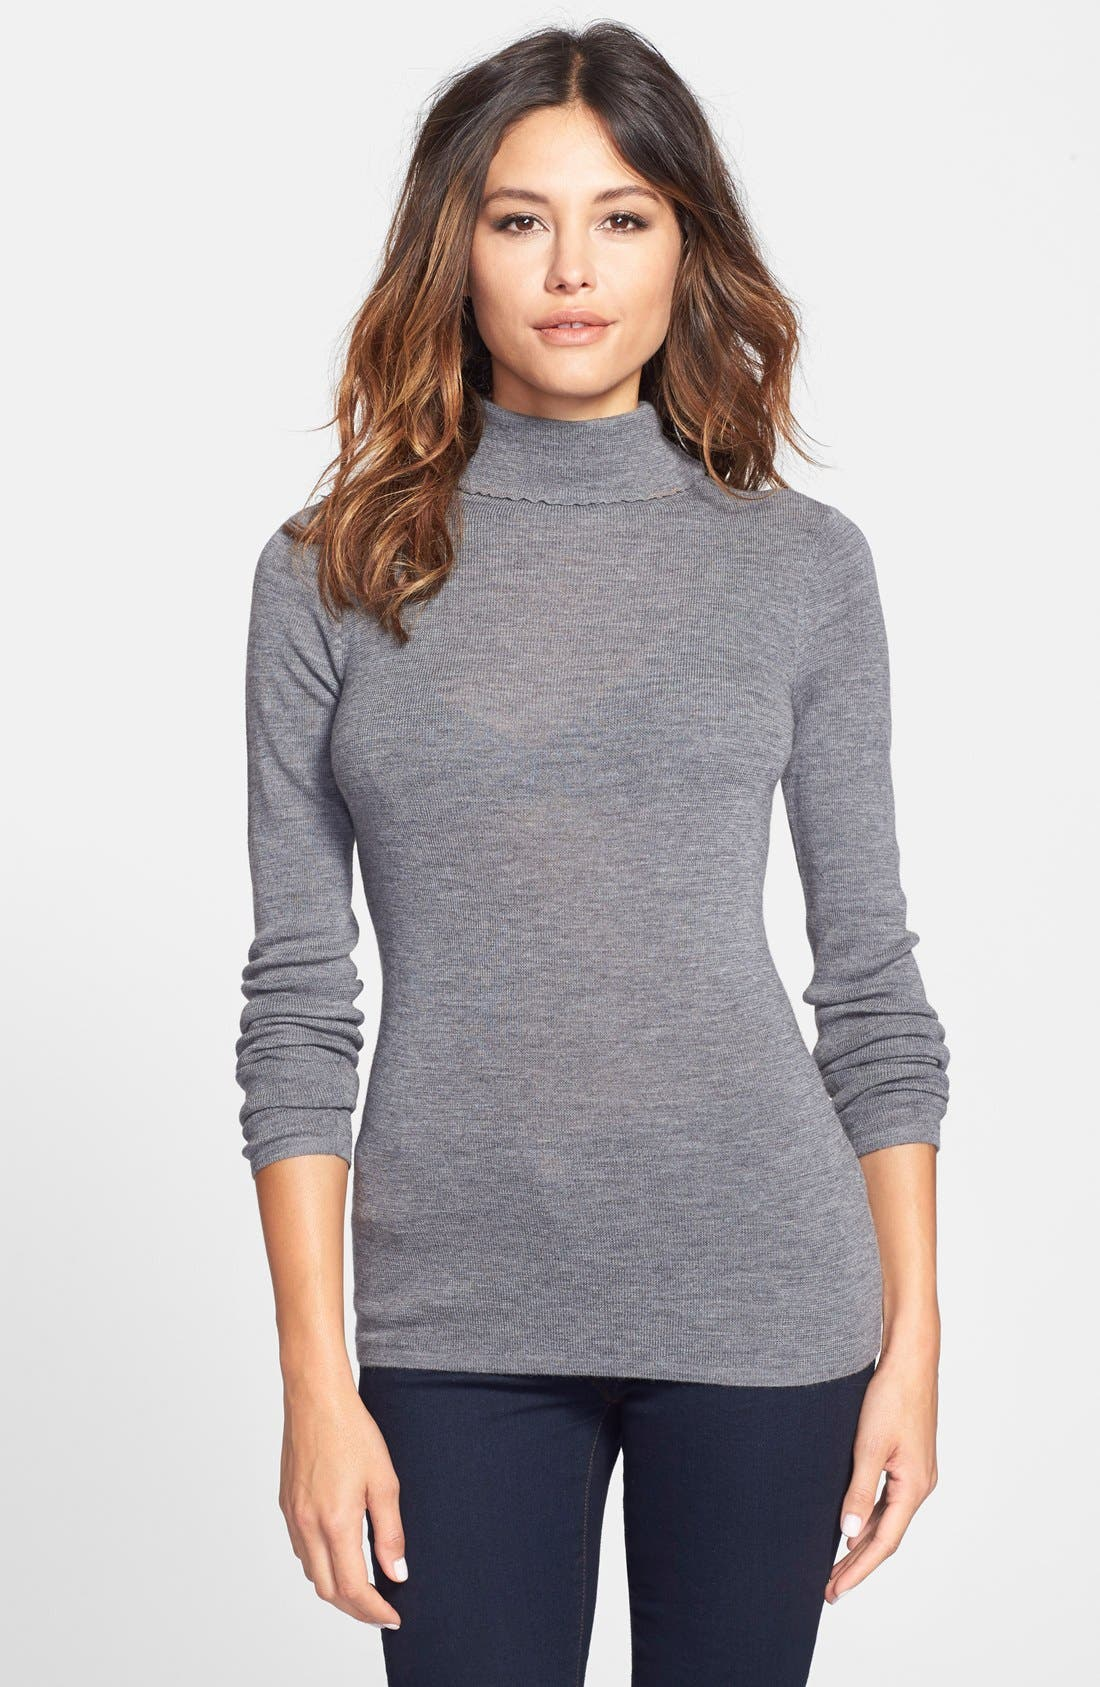 Main Image - Eileen Fisher The Fisher Project Ultrafine Merino Turtleneck Sweater